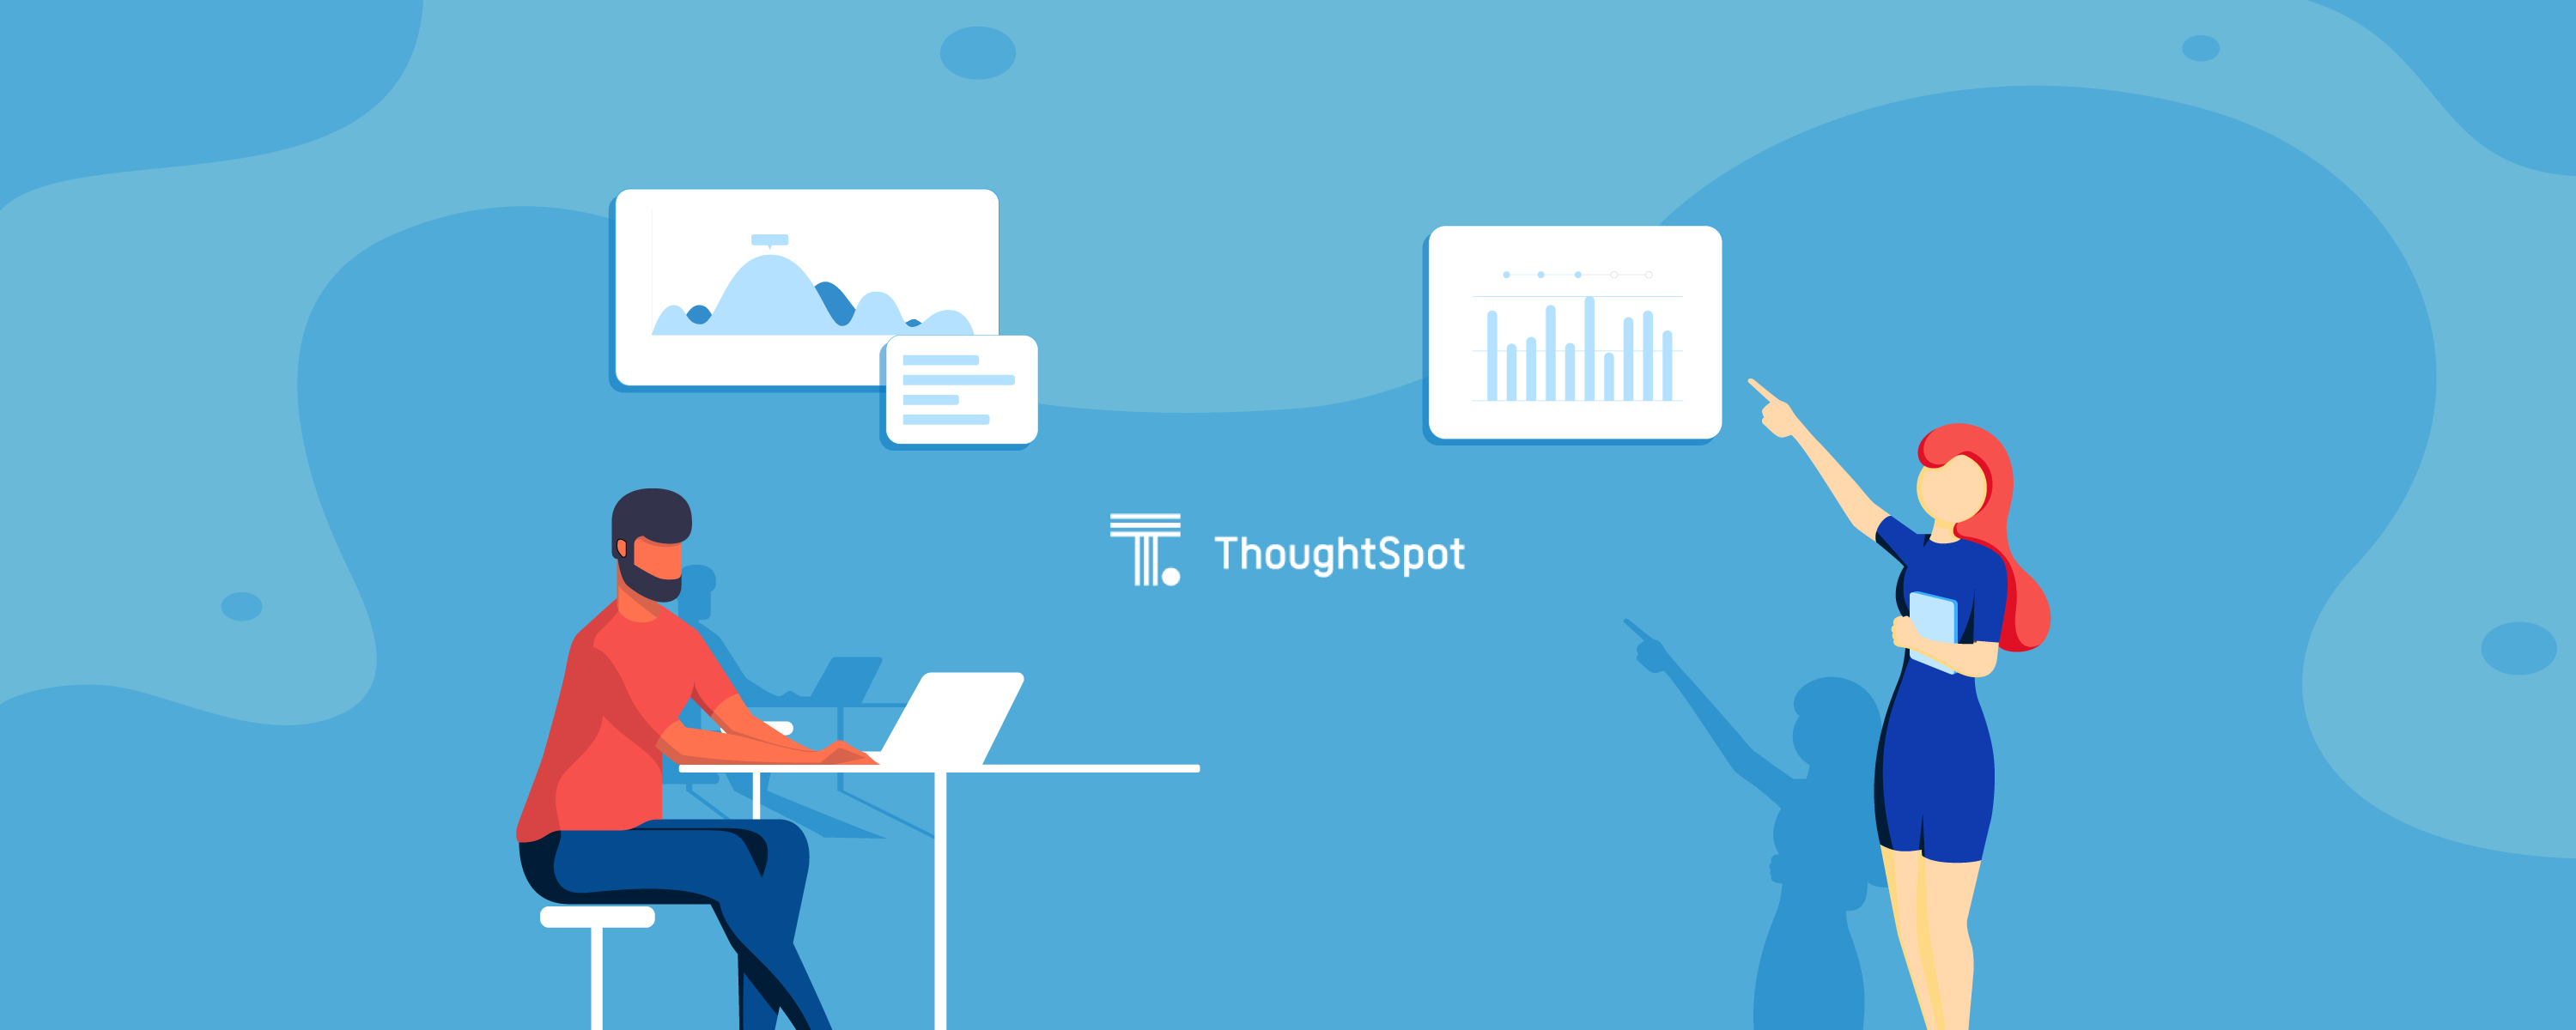 thoughtspot case study